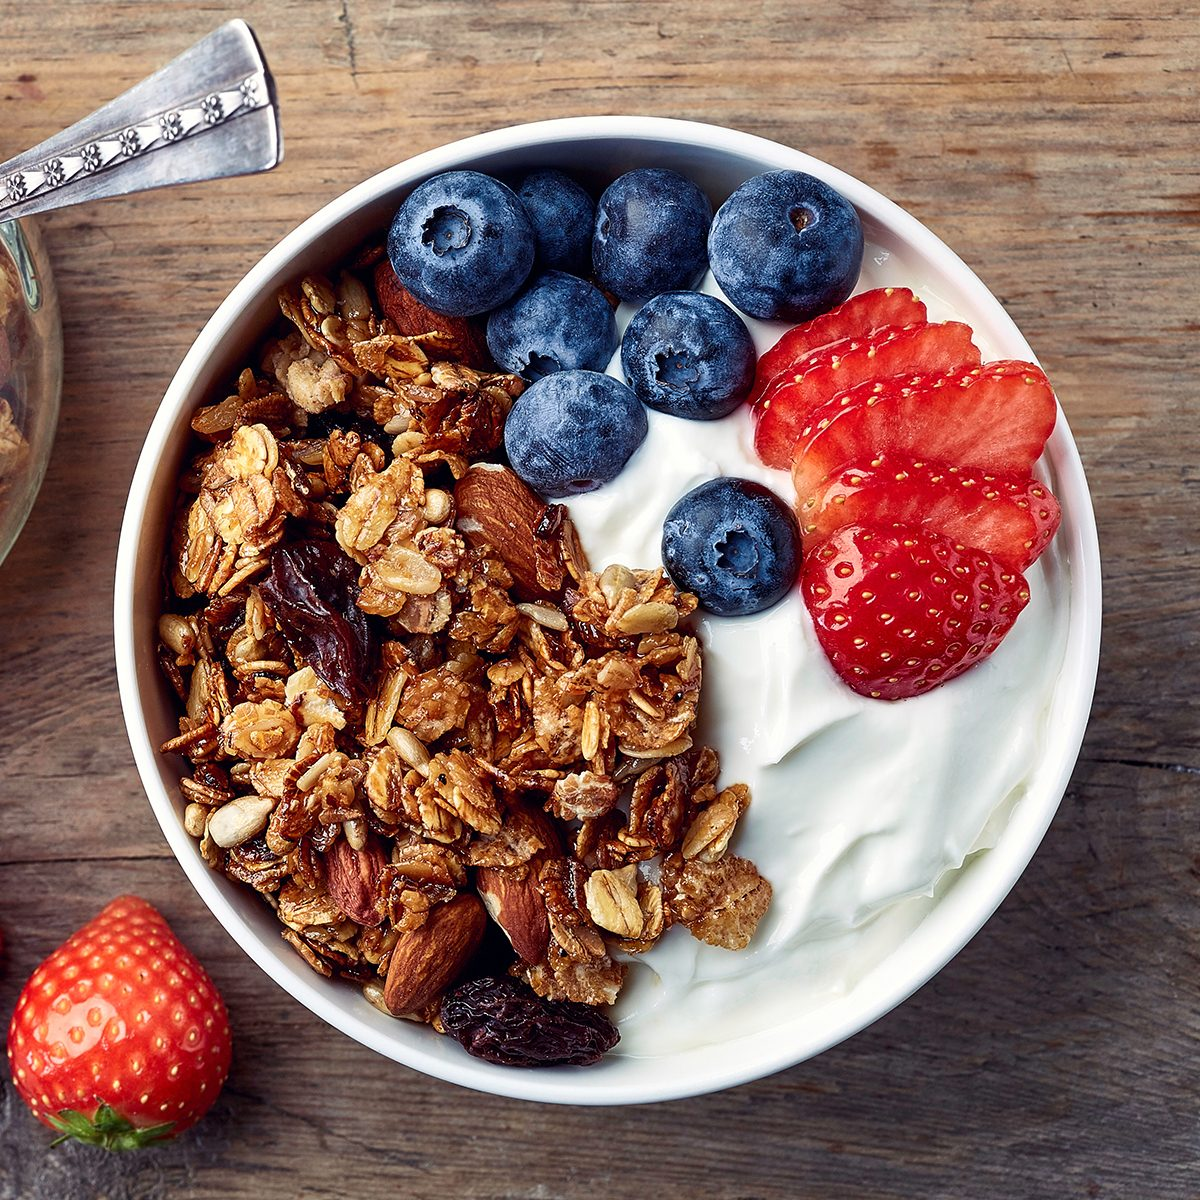 Bowl of homemade granola with yogurt and fresh berries on wooden background from top view; Shutterstock ID 521309641; Job (TFH, TOH, RD, BNB, CWM, CM): TOH